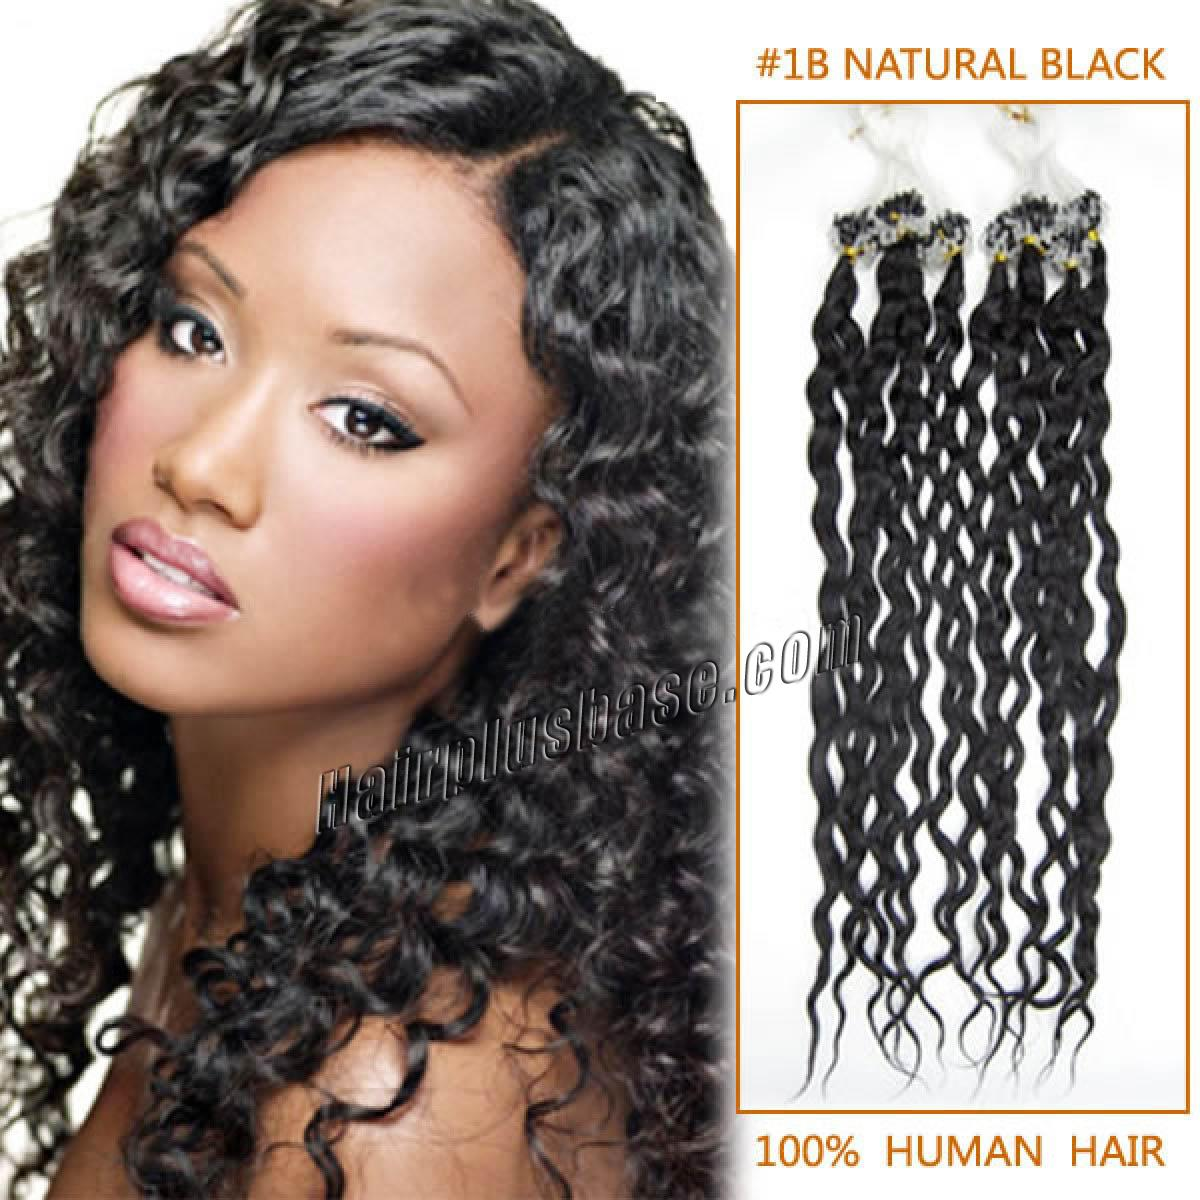 20 Inch 1b Natural Black Curly Micro Loop Human Hair Extensions 100S